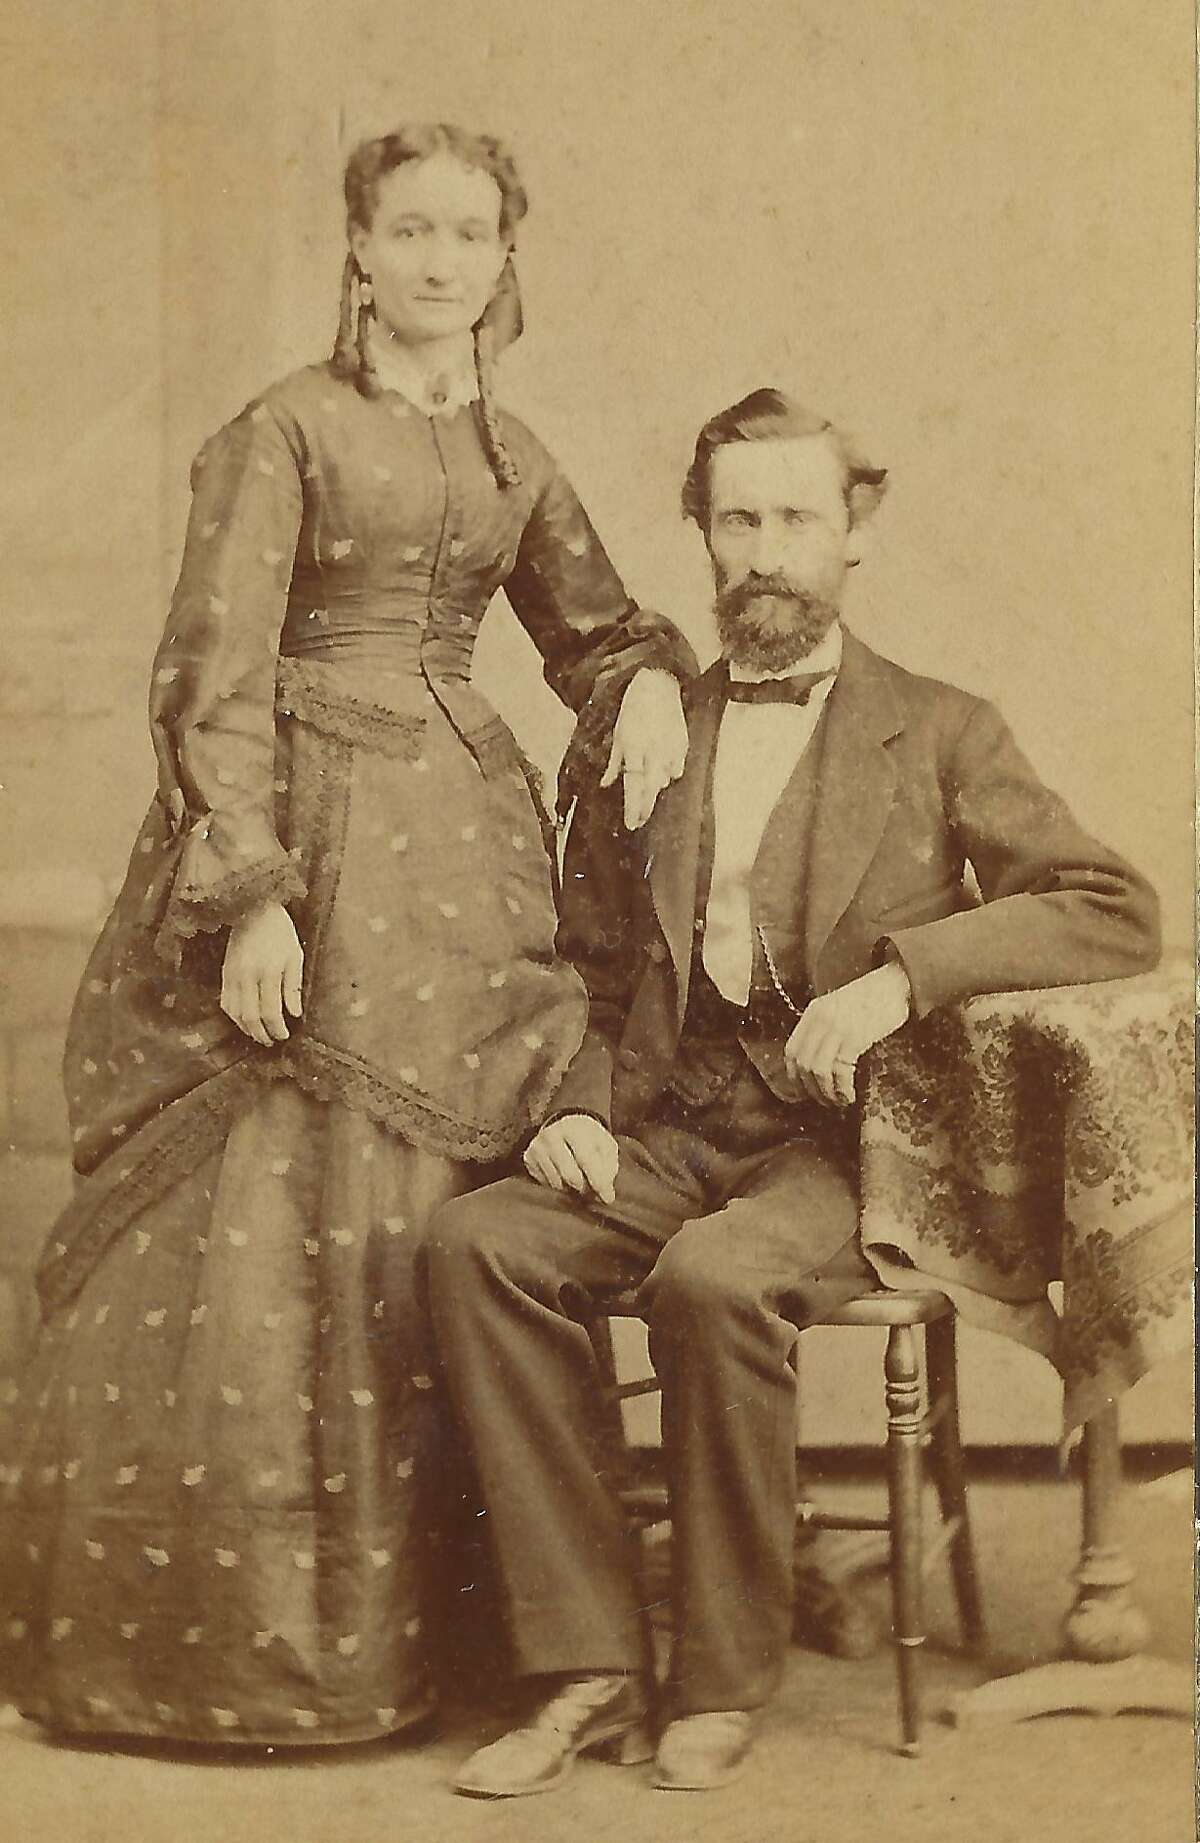 Mary Margaret Healy married John Bernard Murphy in 1849. The two lived on a ranch in San Patricio County, then in Corpus Christi, where she tried to start a hospital. He died in 1884.